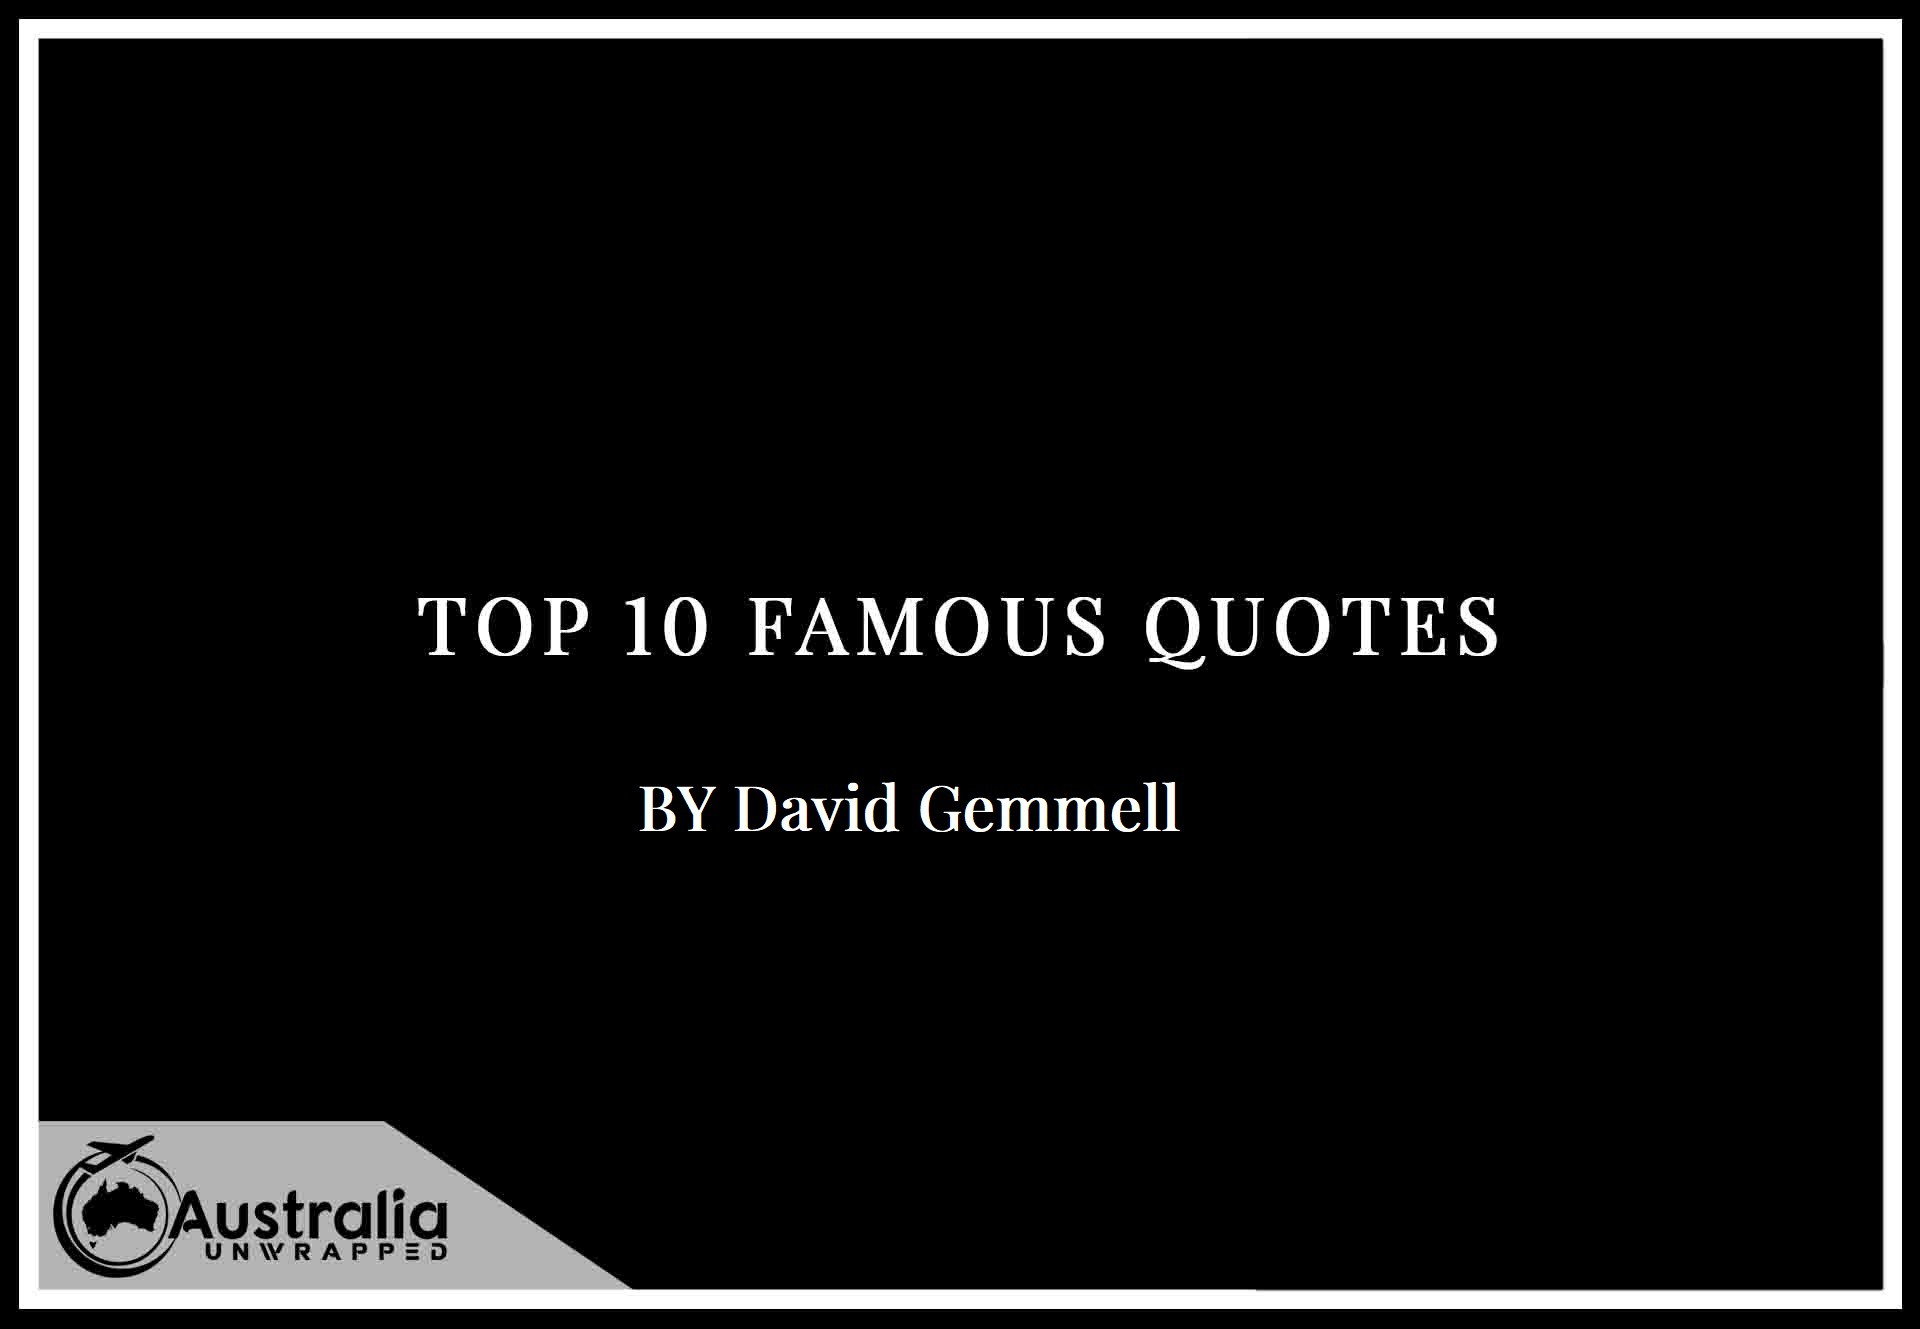 Top 10 Famous Quotes by Author David Gemmell